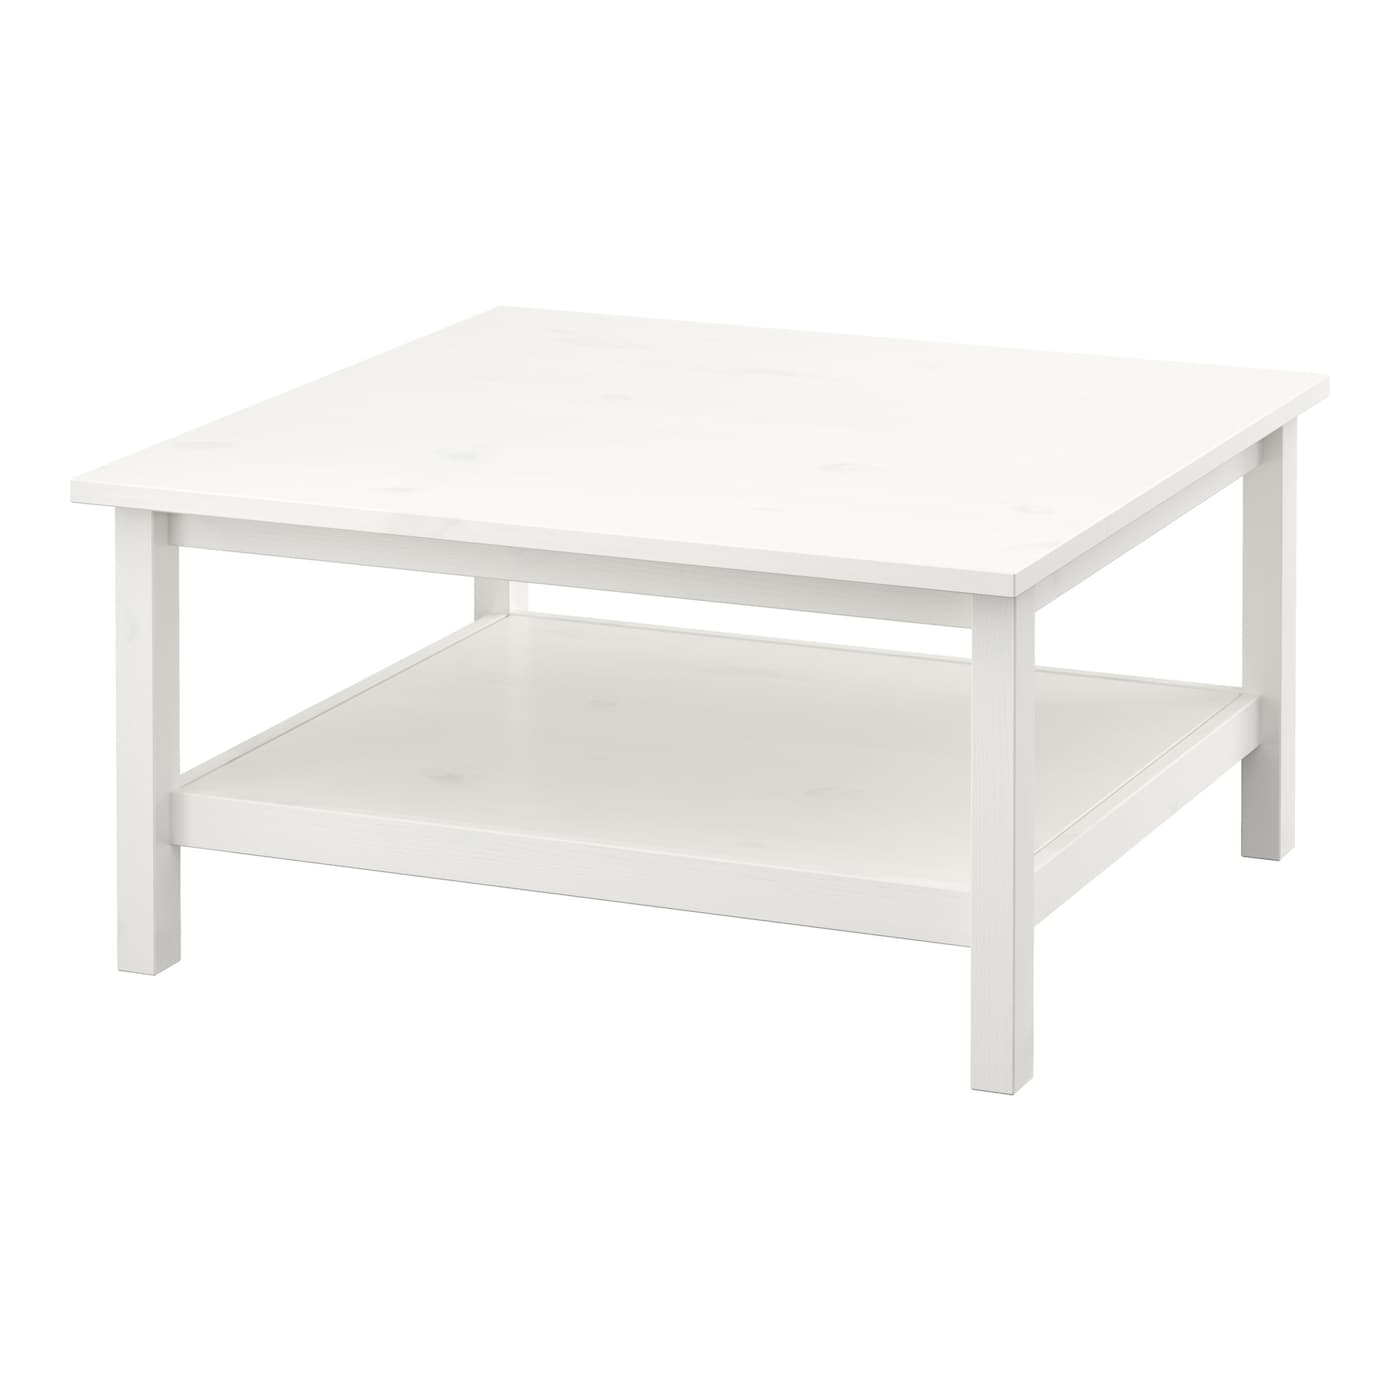 Hemnes Coffee Table Light Brown 118x75 Cm: HEMNES Coffee Table White Stain 90 X 90 Cm